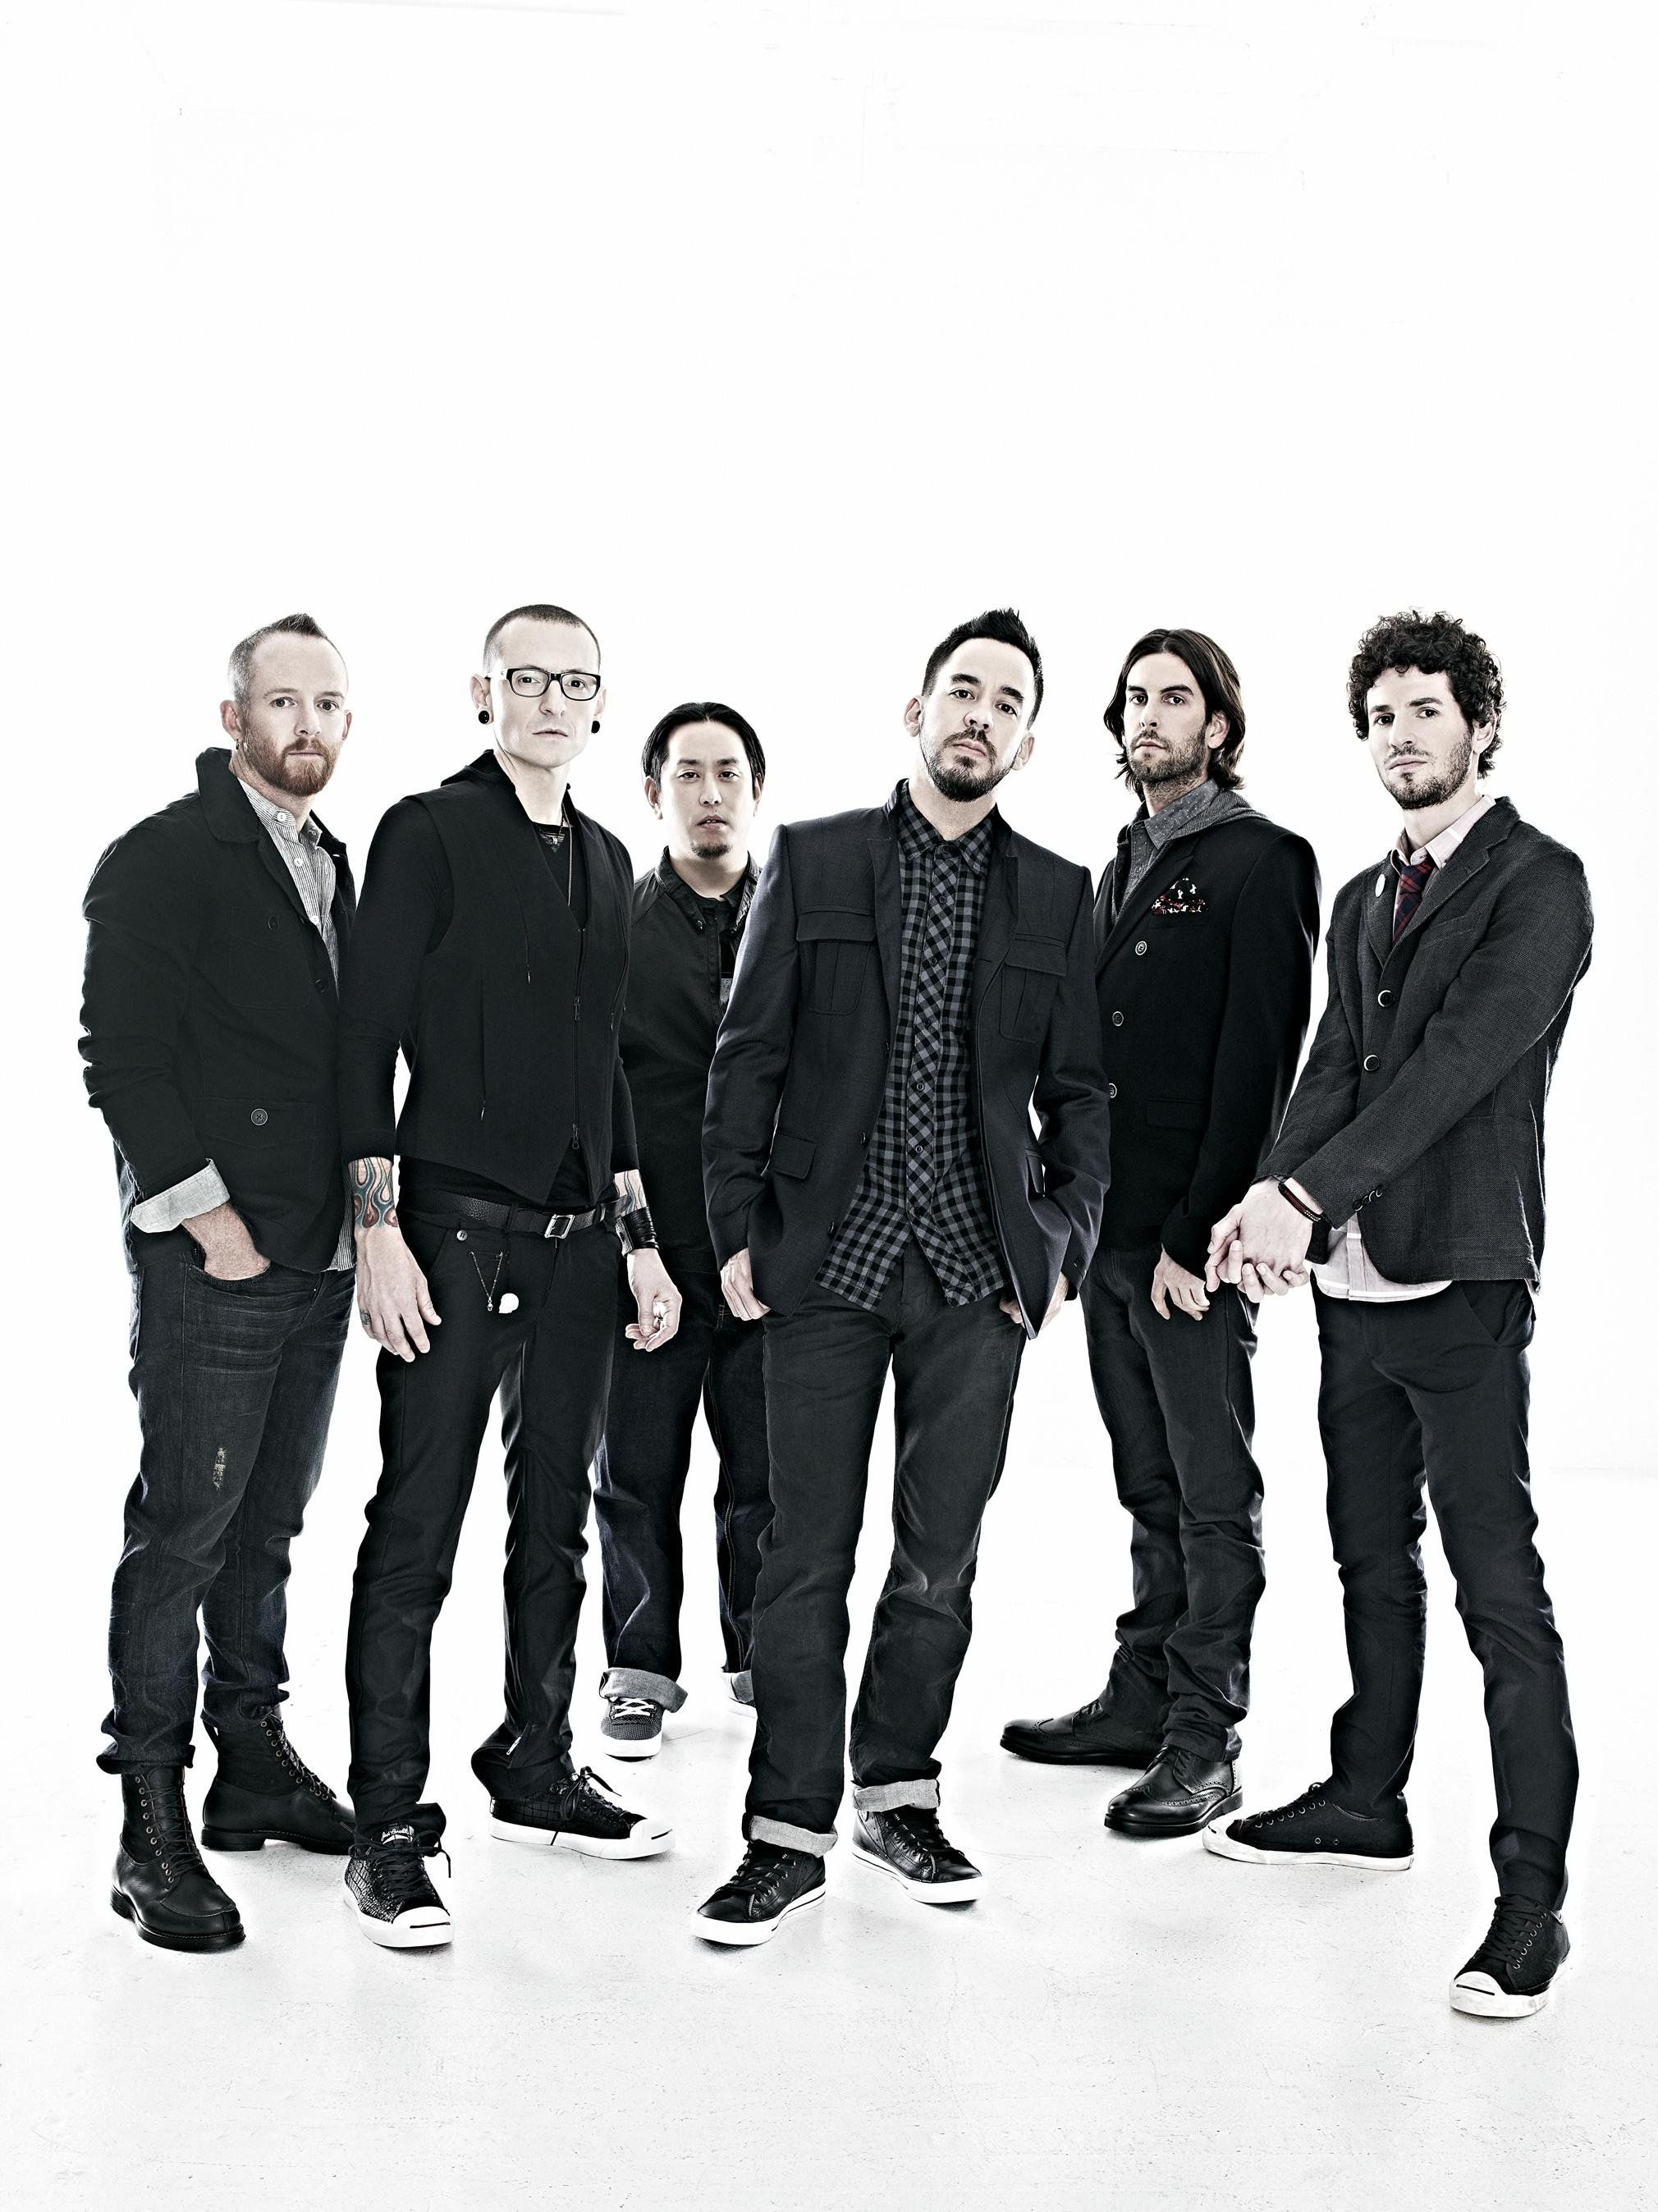 Linkin park linkin park pinterest linkin park and lp linkin park stopboris